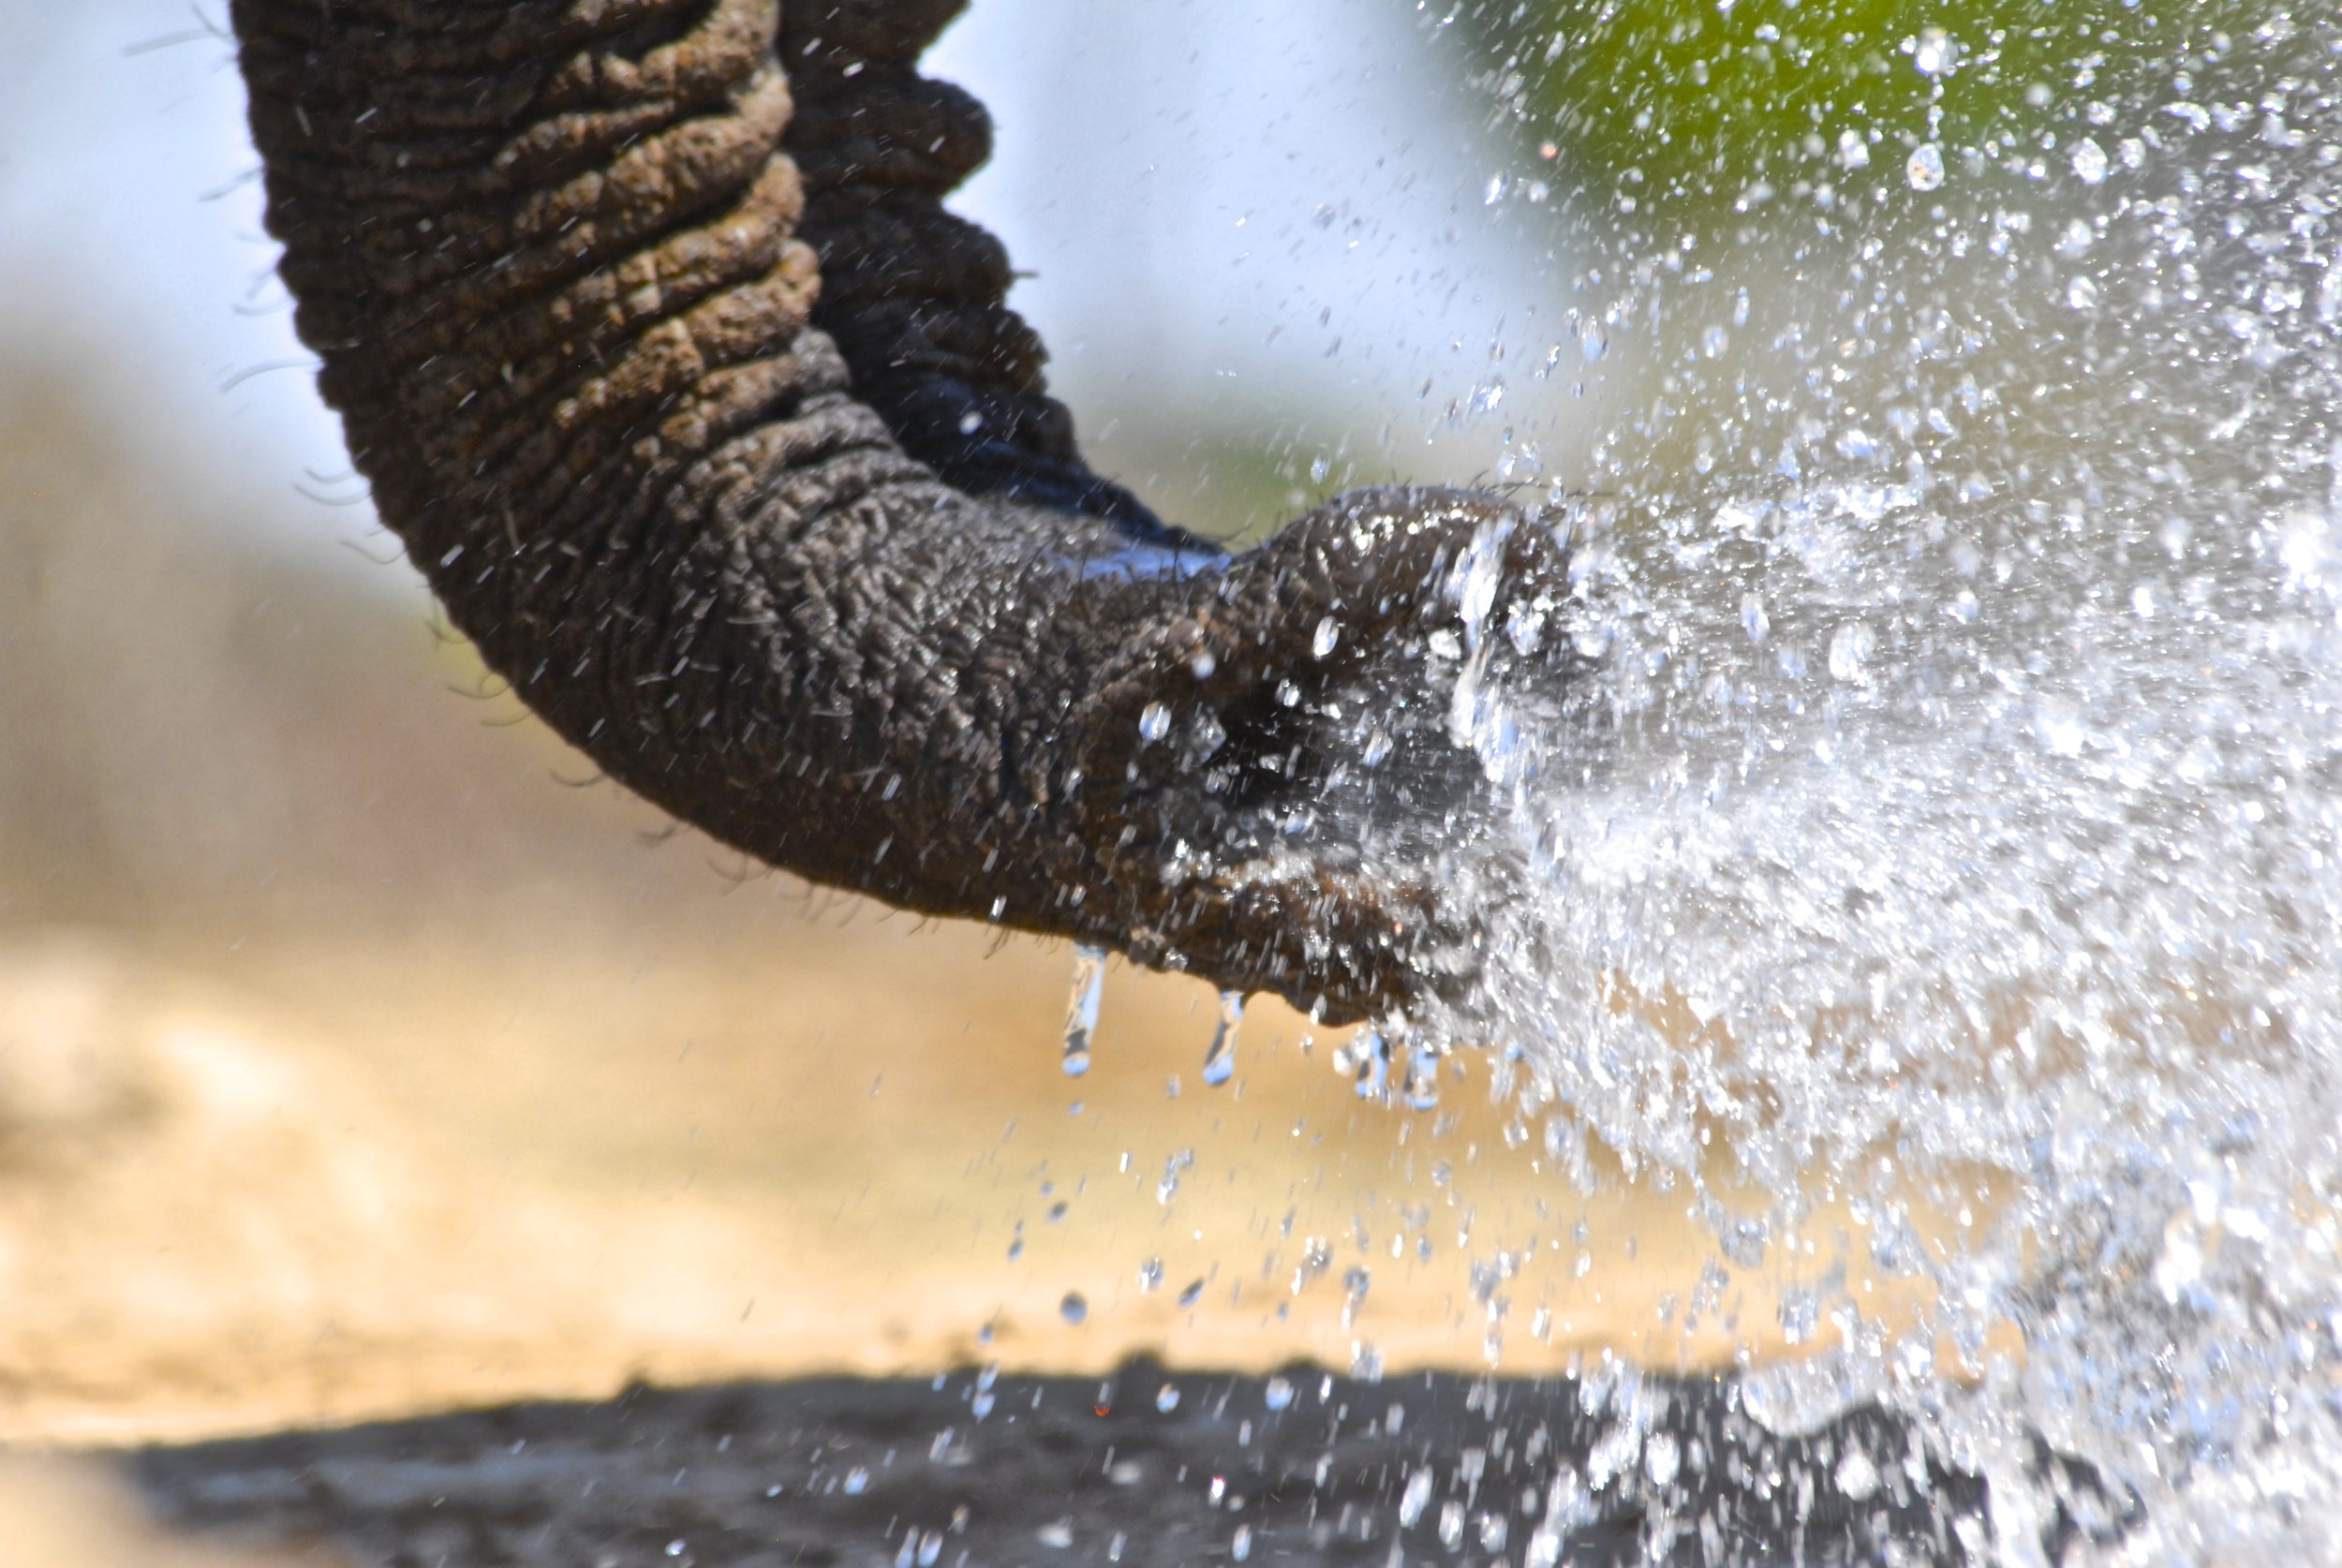 56. Imvelo Safari Lodges - Bomani Tented Lodge - Mind the splash at the Look Up photography blind.jpg